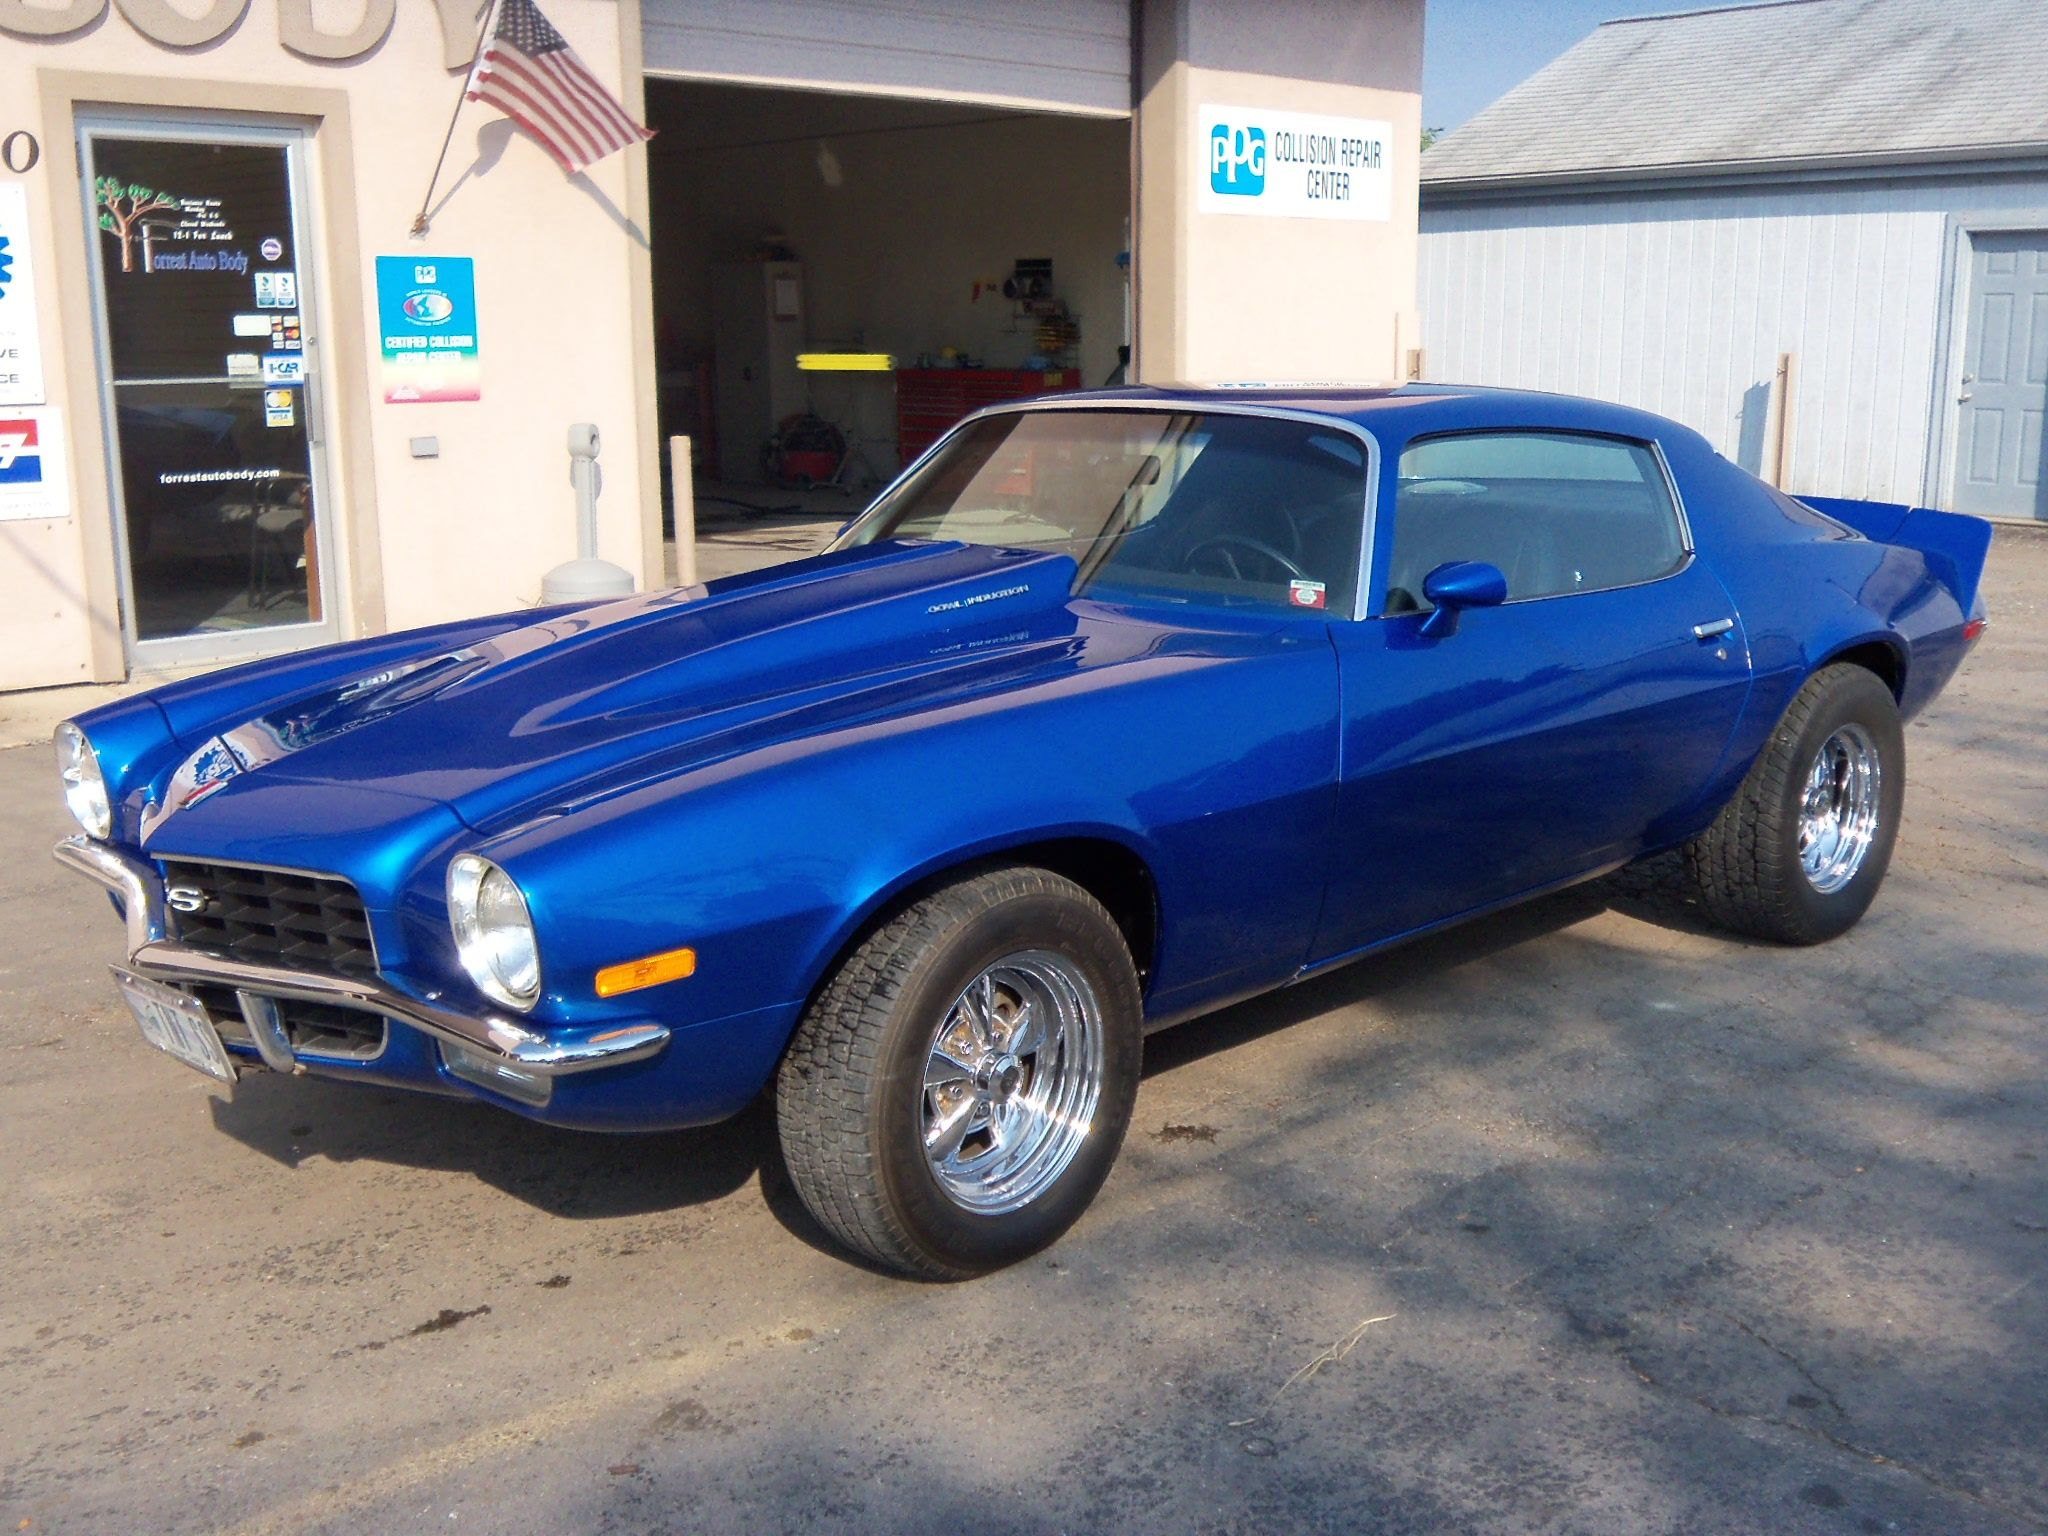 1973 Camaro - very cool blue  | Camaros | Chevy muscle cars